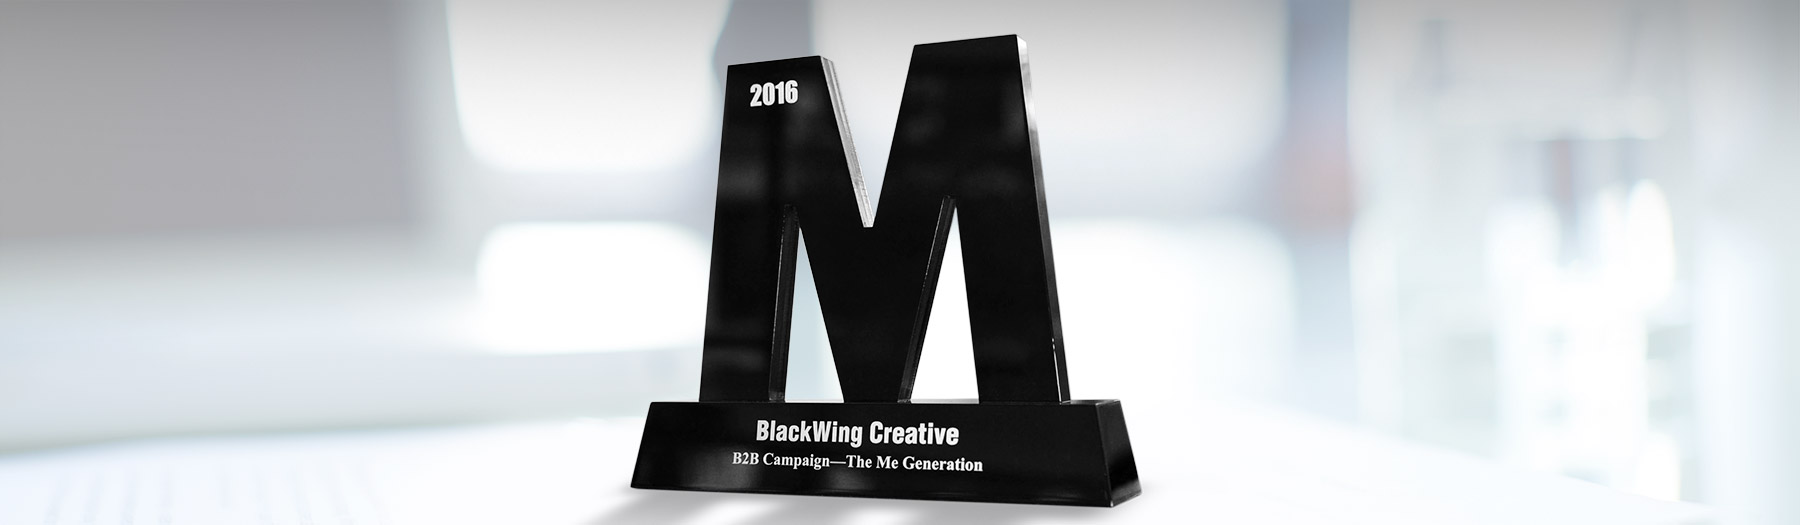 BlackWing wins Gold and Bronze awards in Marketing Magazine creative awards show.